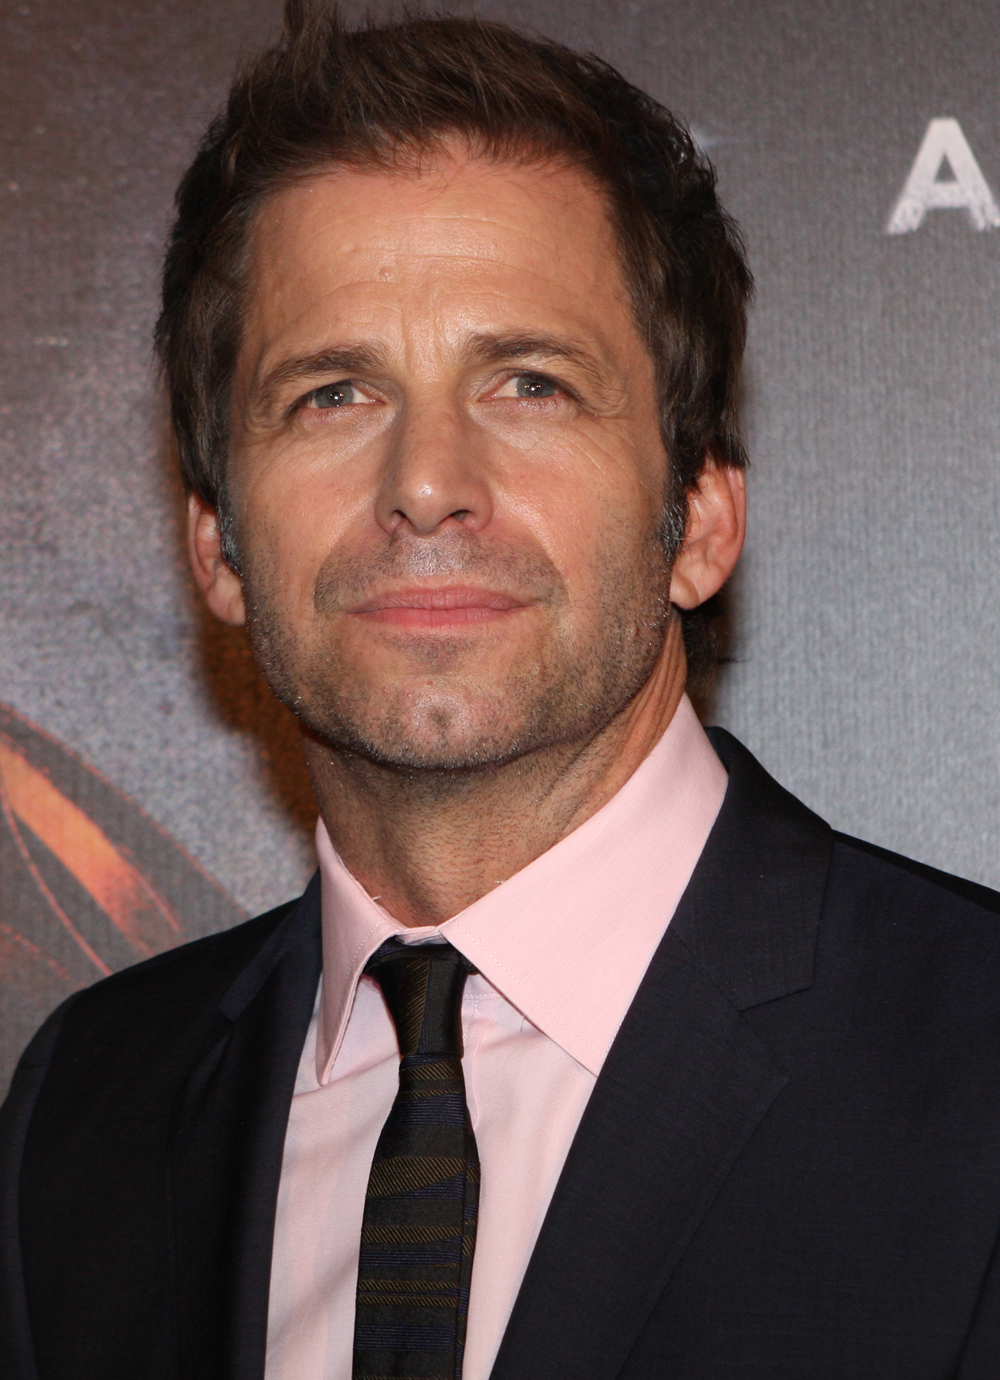 The 51-year old son of father Charles Edward Snyder and mother Marsha Snyder, 170 cm tall Zack Snyder in 2017 photo